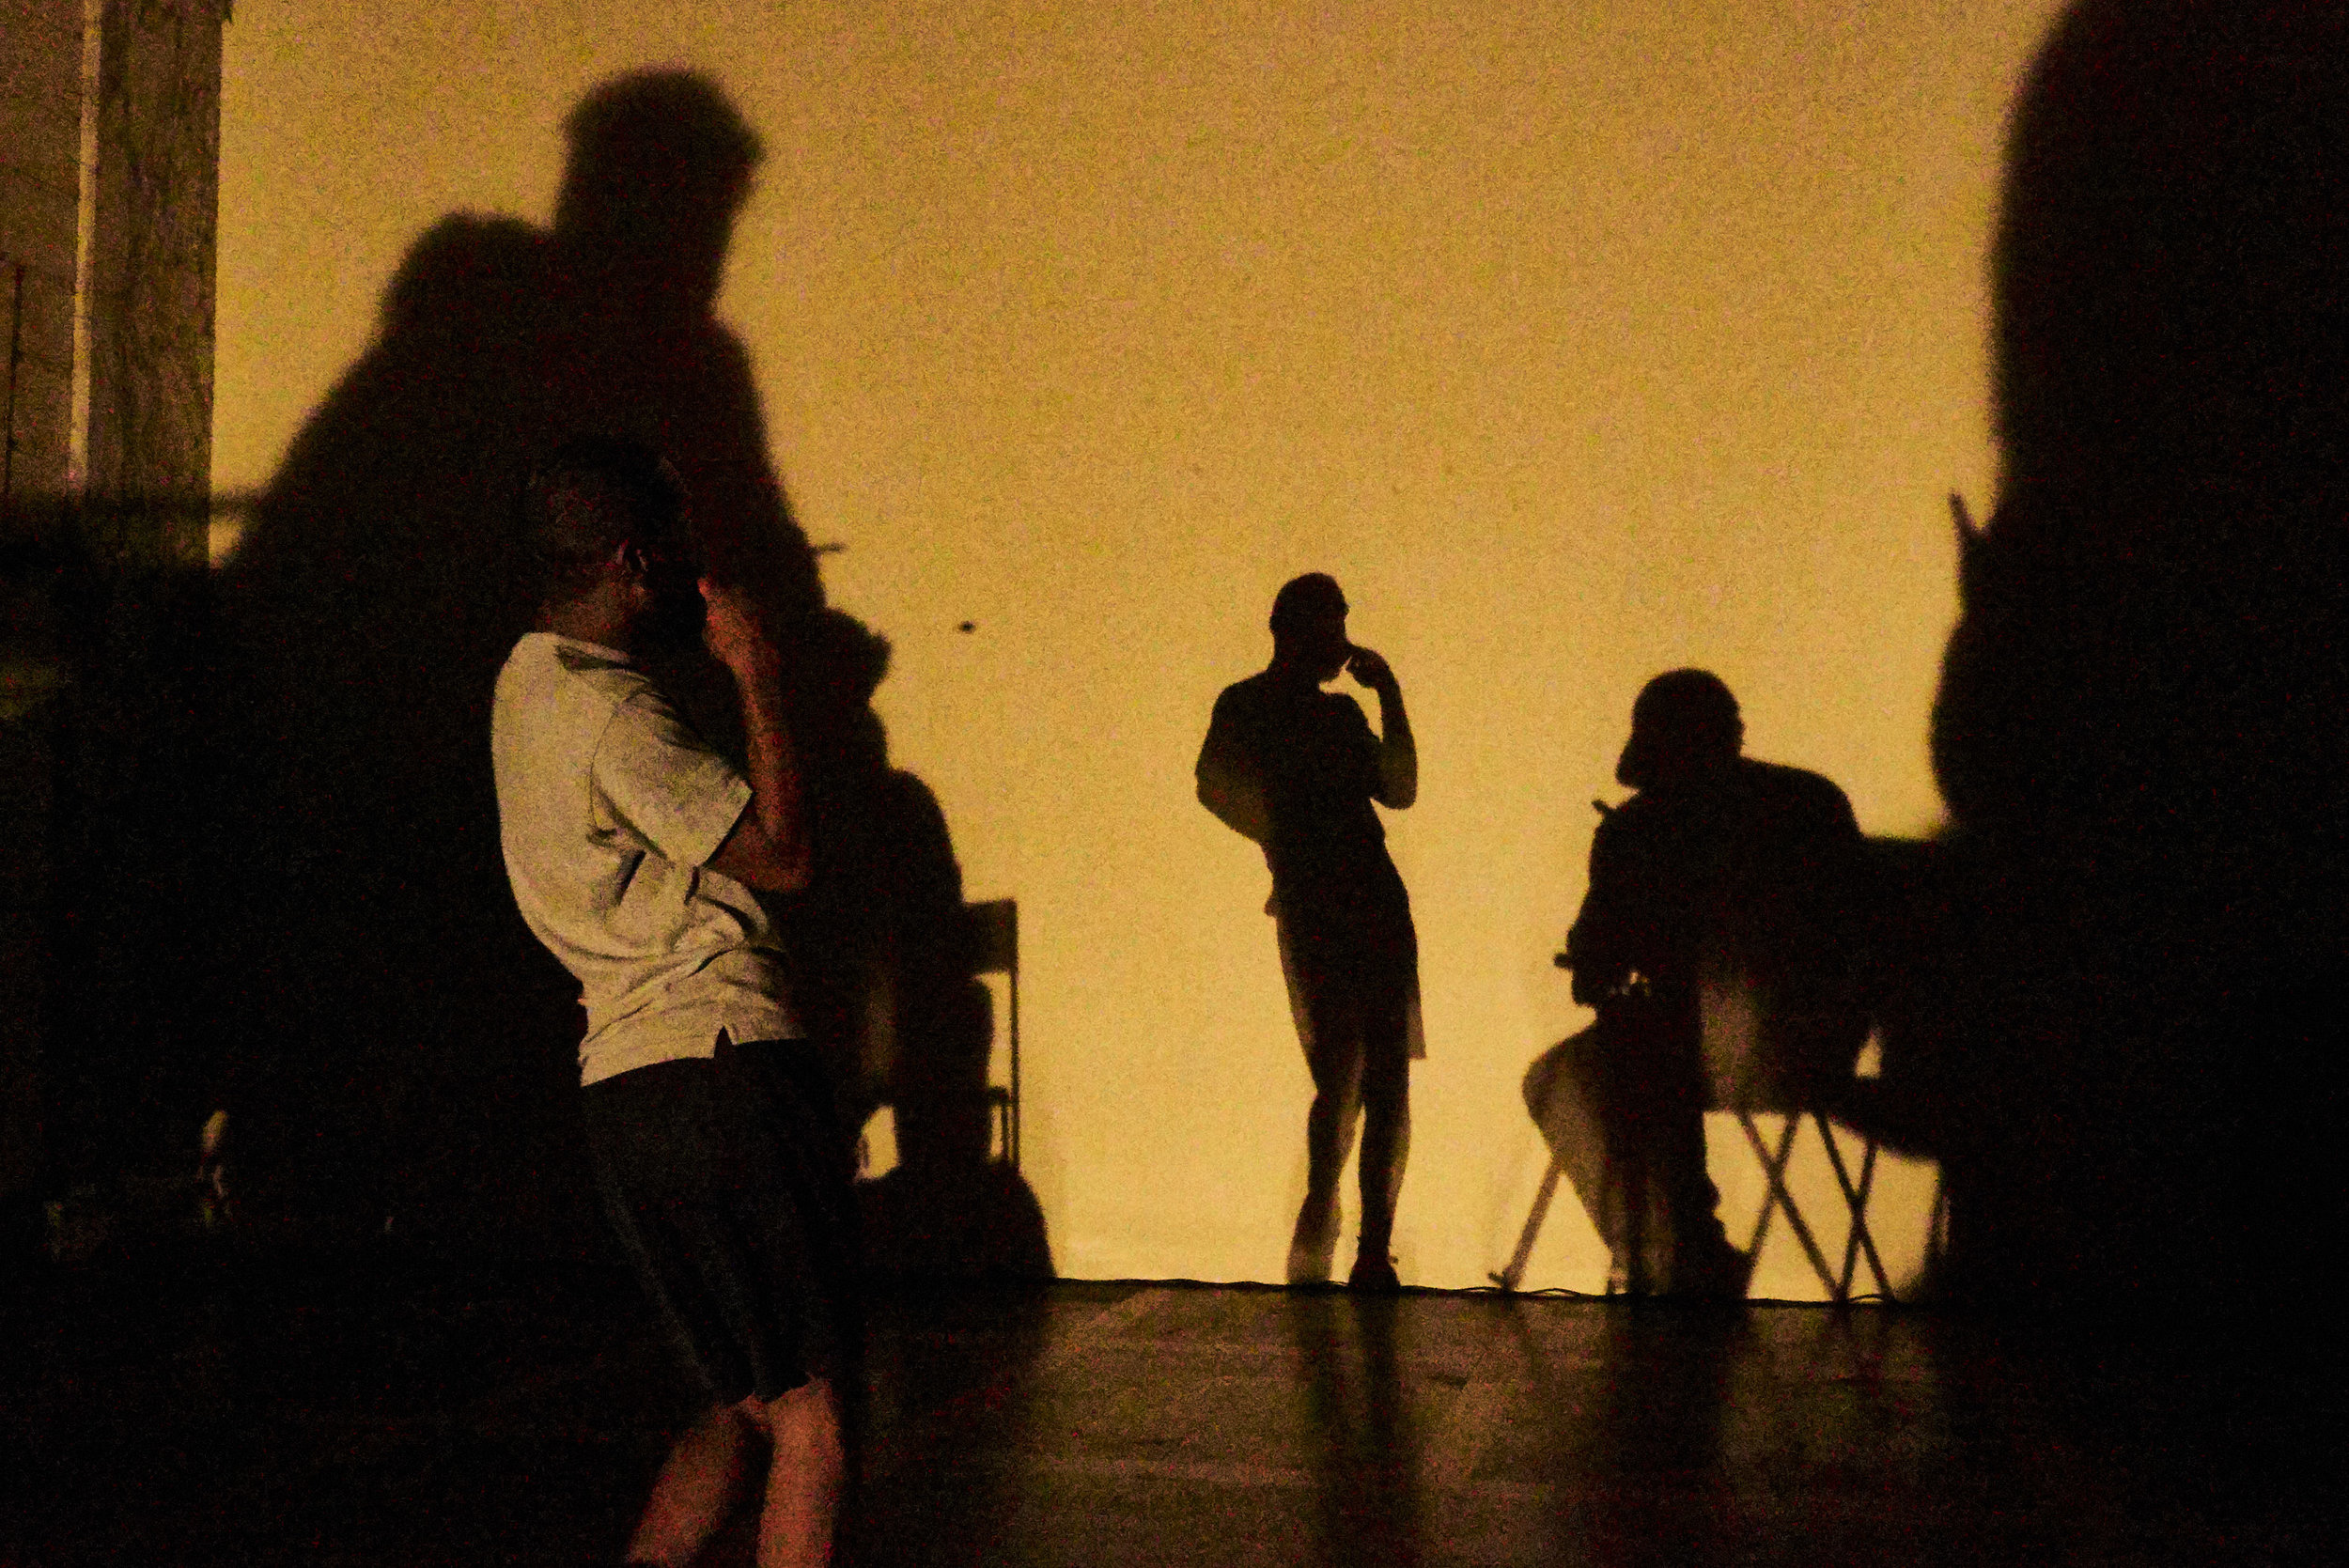 Image: In a dark photo, I dance playfully with my back to the camera as sepia light casts my and and the audiences shadows on the wall before us. I wear a gray t-shirt and black gym shorts.